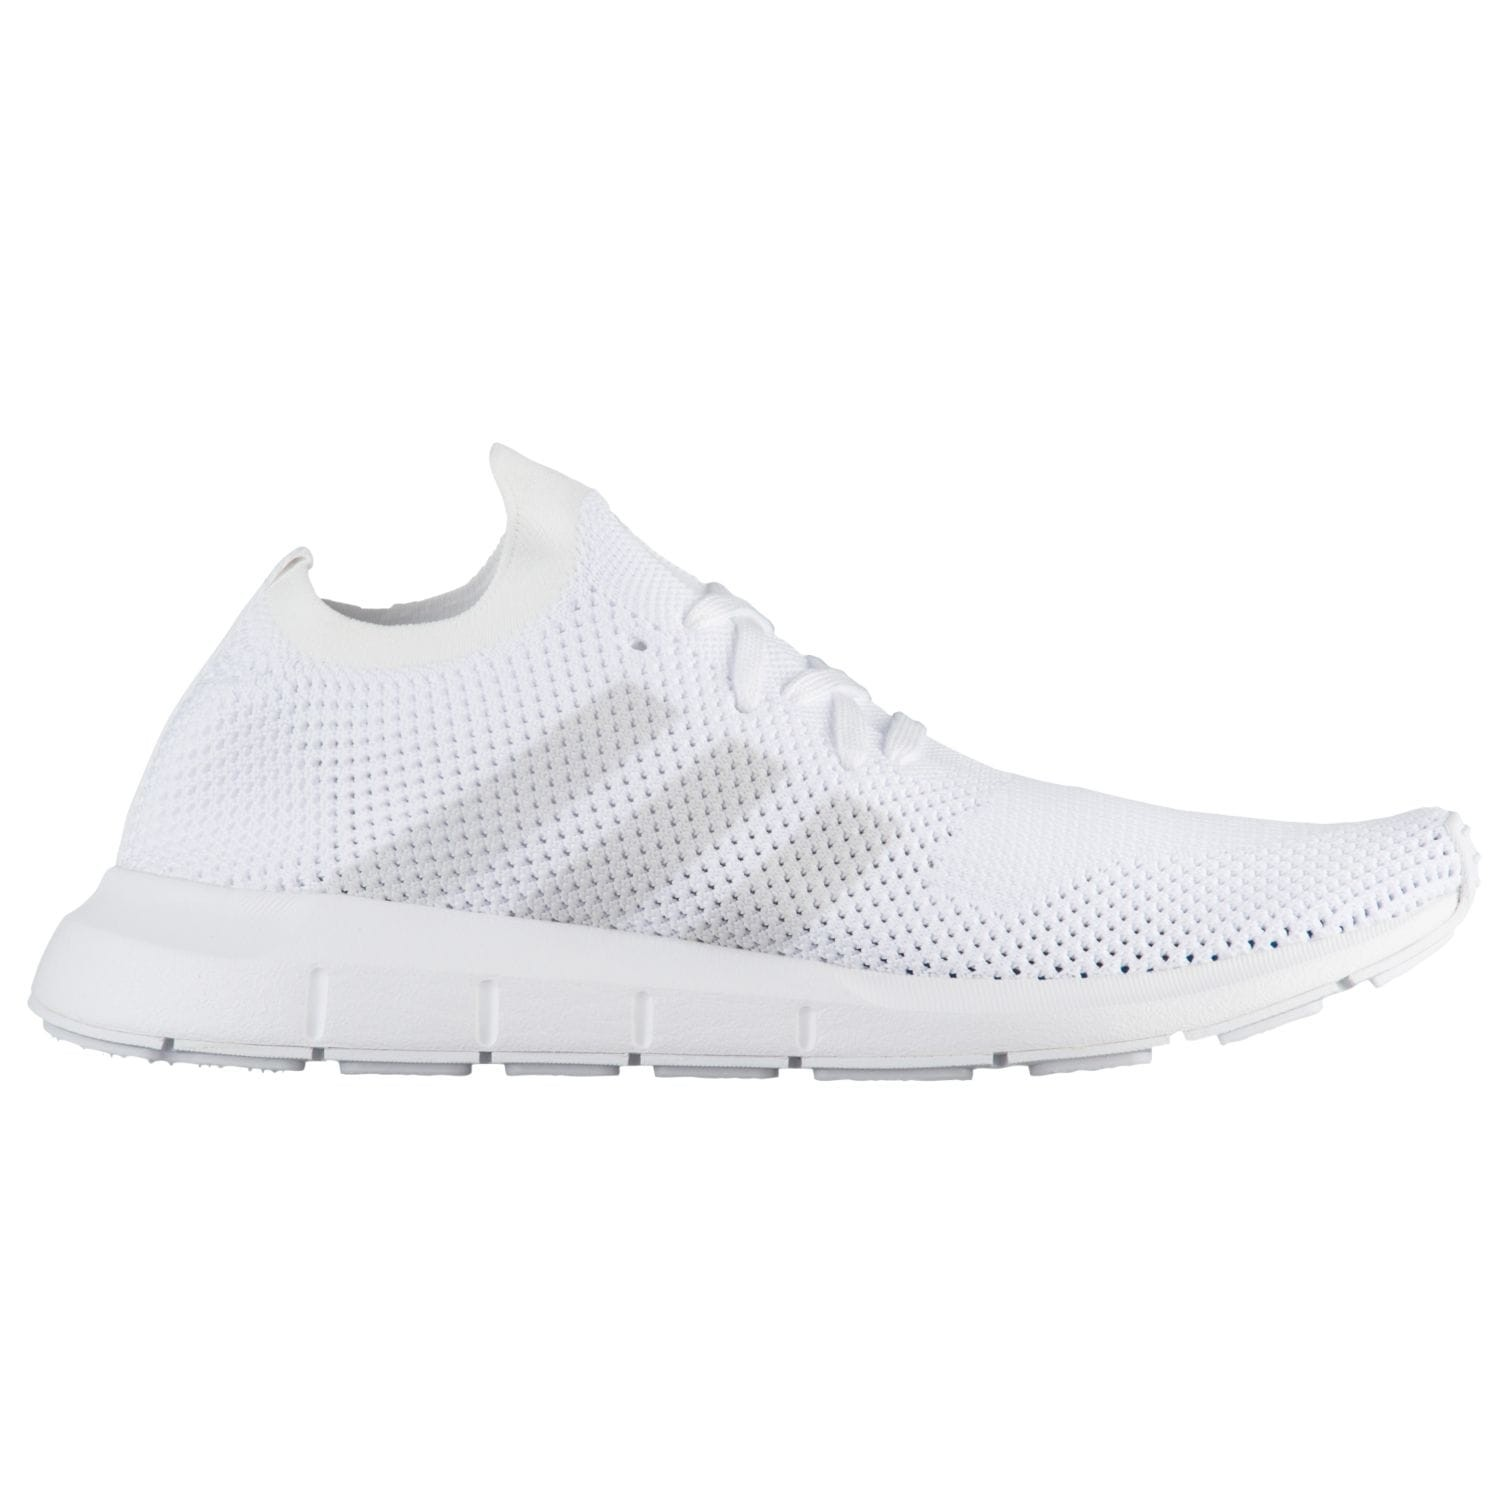 adidas Originals Swift Run Primeknit Skor CQ2892 - Herr